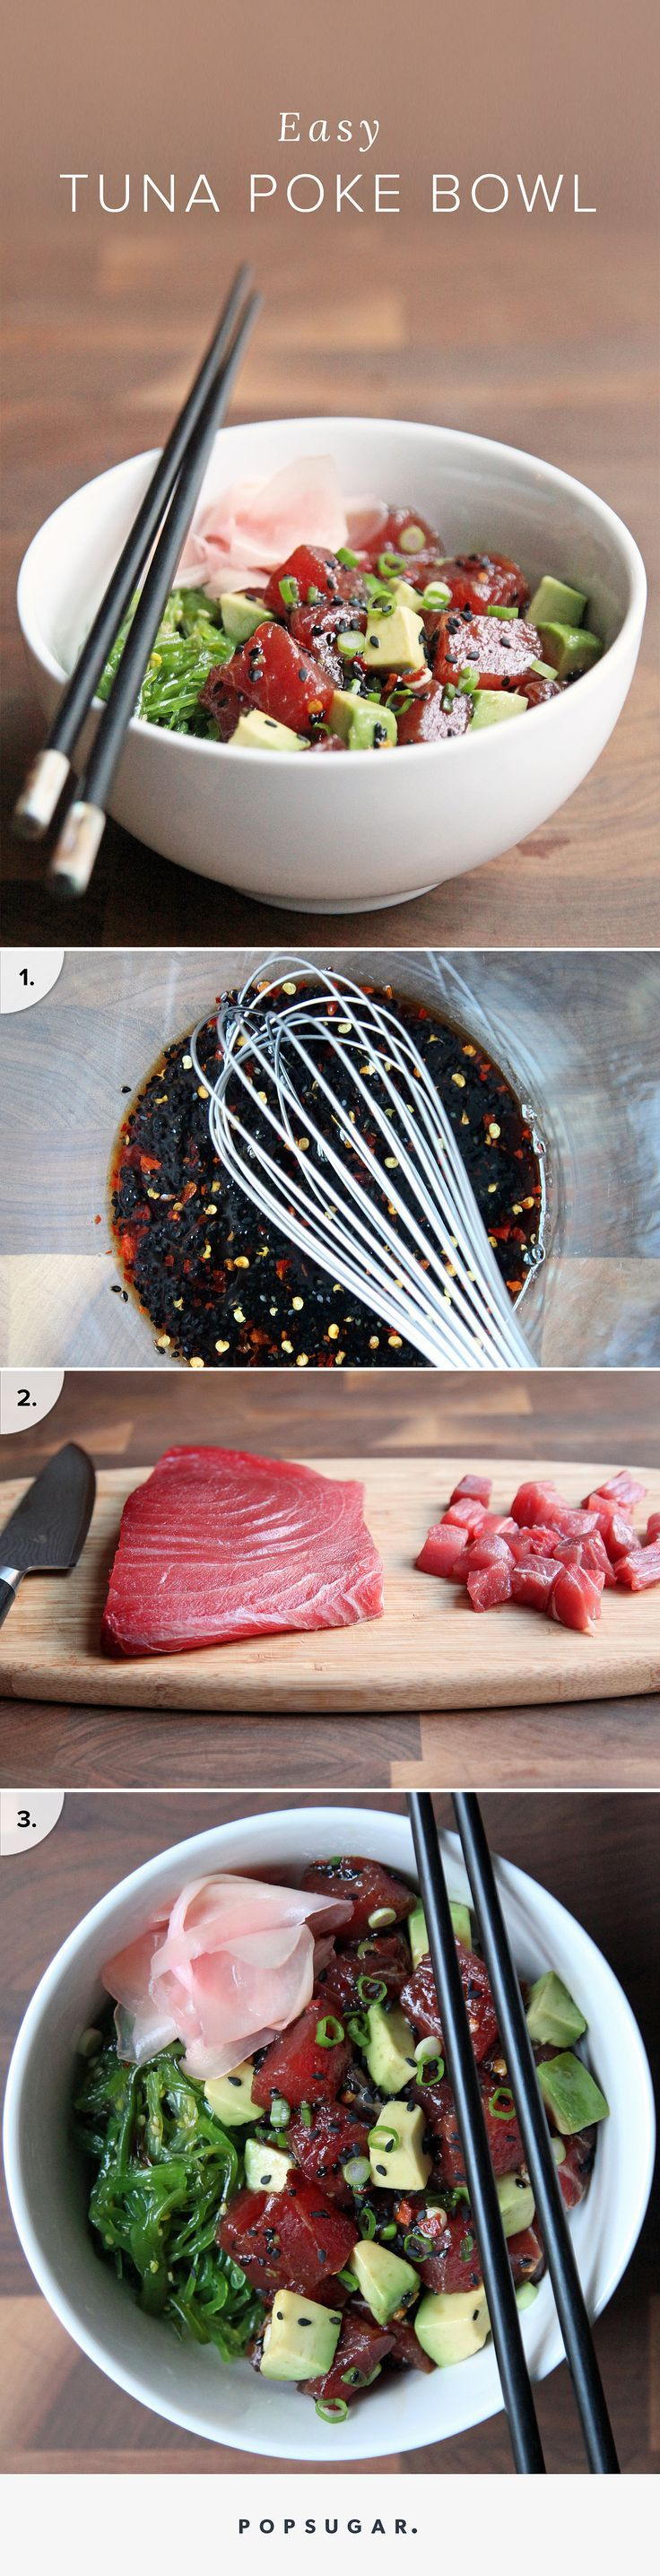 A traditional Hawaiian seafood preparation — take bite-size pieces of raw fish like ahi tuna, salmon, or octopus, marinade it in soy sauce and in essence you have poke (pronounced POH-keh).